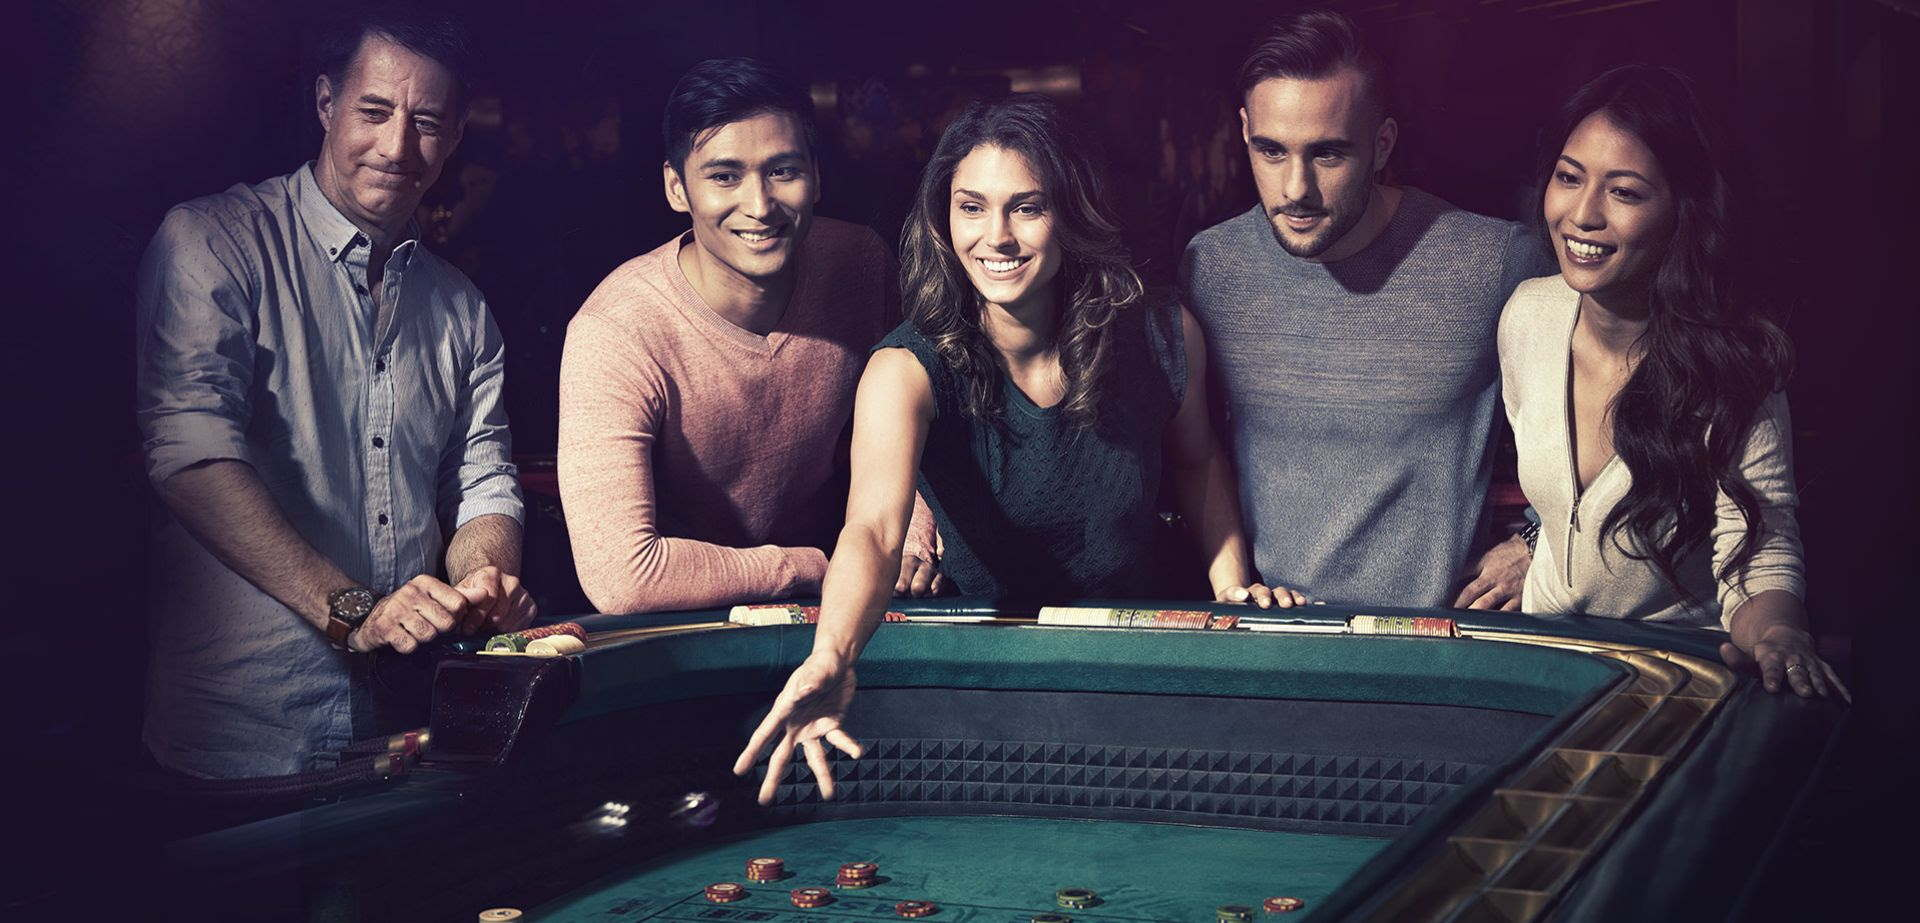 Play Craps at an Online Casino